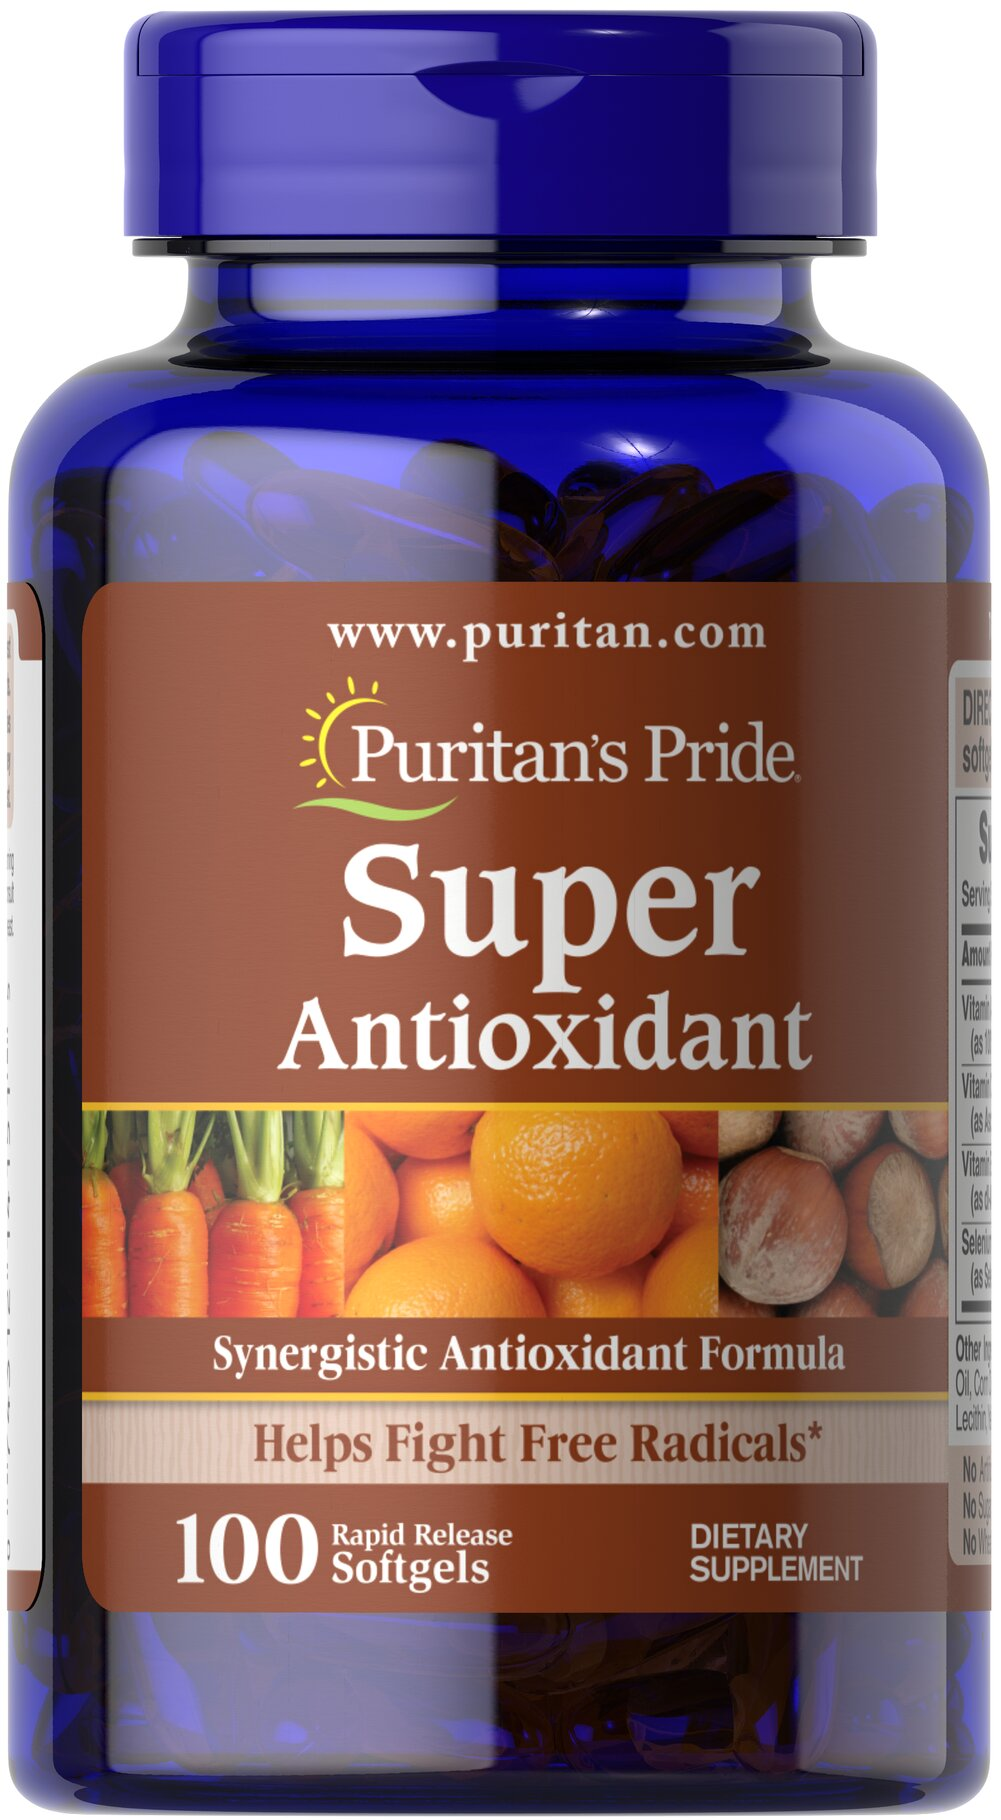 Super Antioxidant Formula** <p>The essential nutrients in our Super Antioxidant Formula are some of the best antioxidants available for fighting free radicals.** Free radicals can be produced from things like car exhaust, smoking, even your own body — plus they contribute to oxidative stress, which can lead to premature aging.** Vitamins A, C, and E and the mineral, Selenium, combat the harmful effects of these free radicals.**</p> 100 Softgels  $30.89